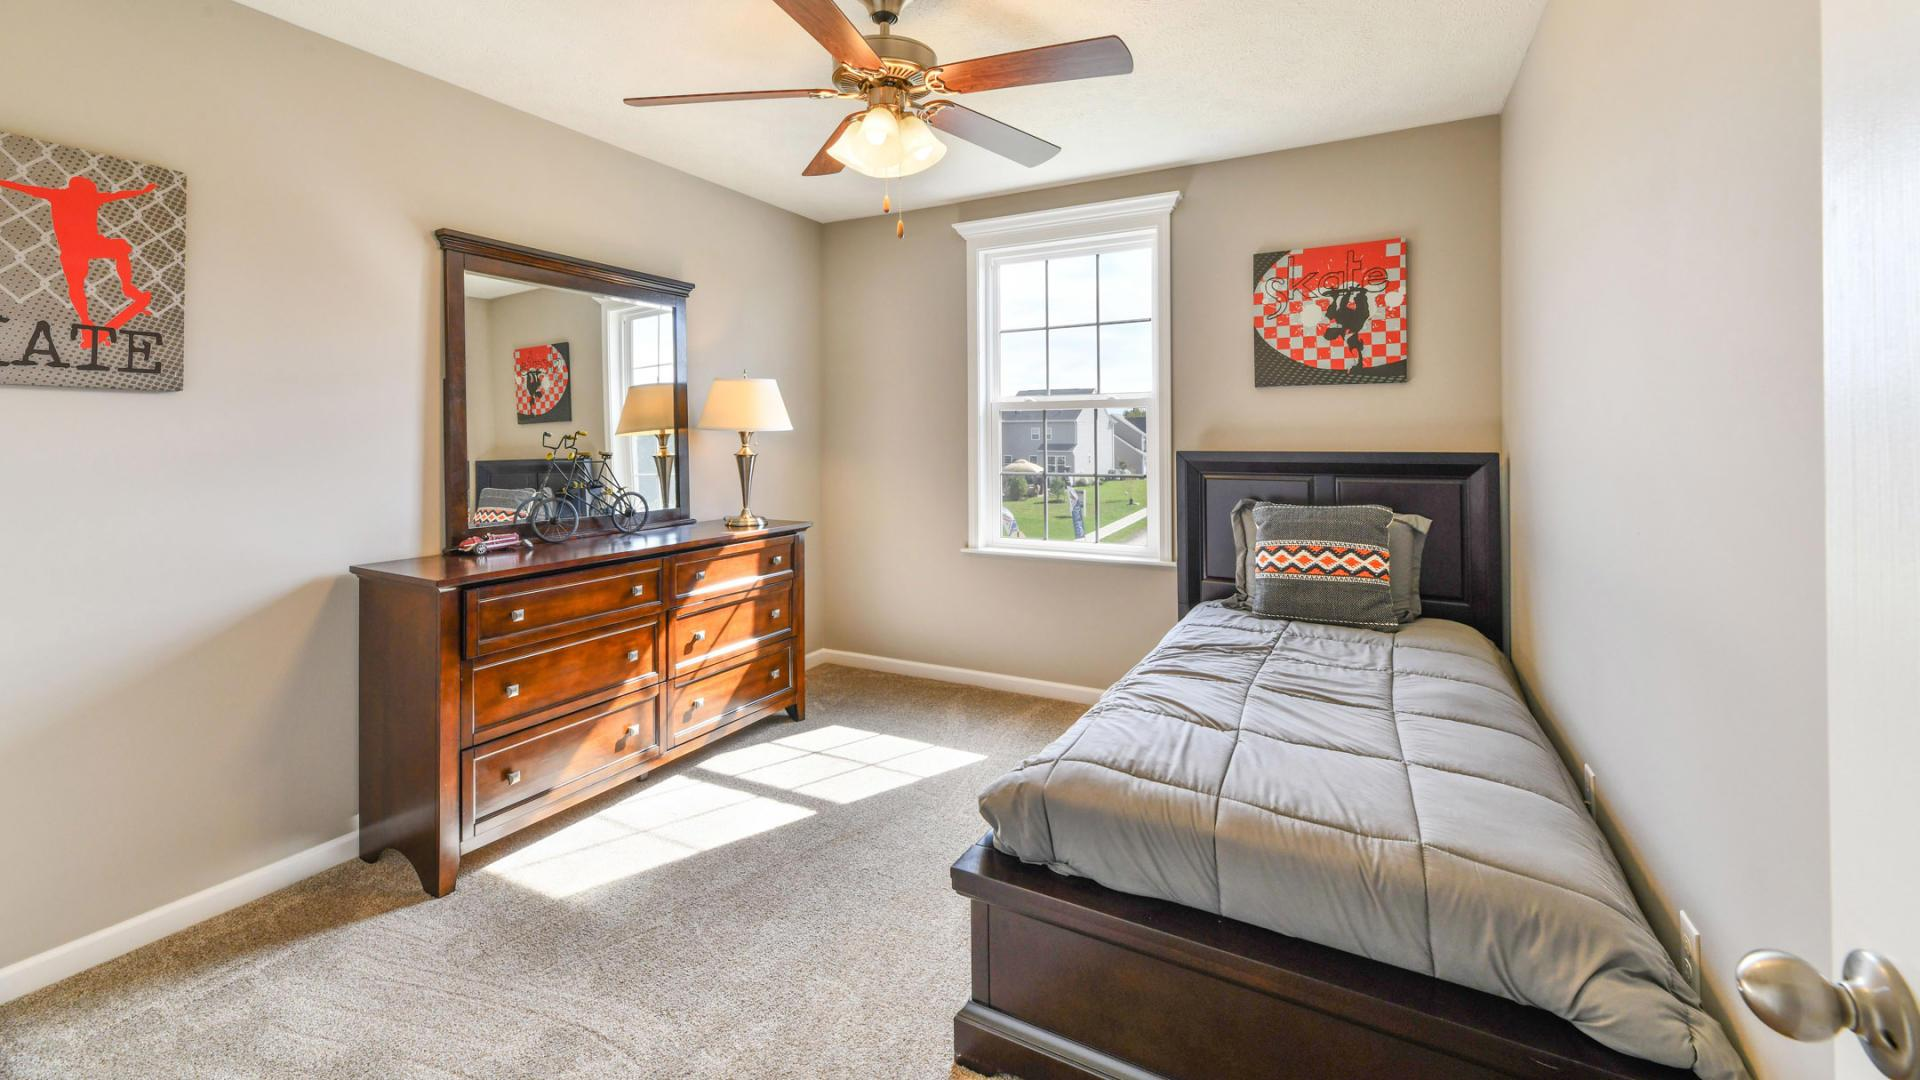 Bedroom featured in the Rockford By Maronda Homes in Pittsburgh, PA